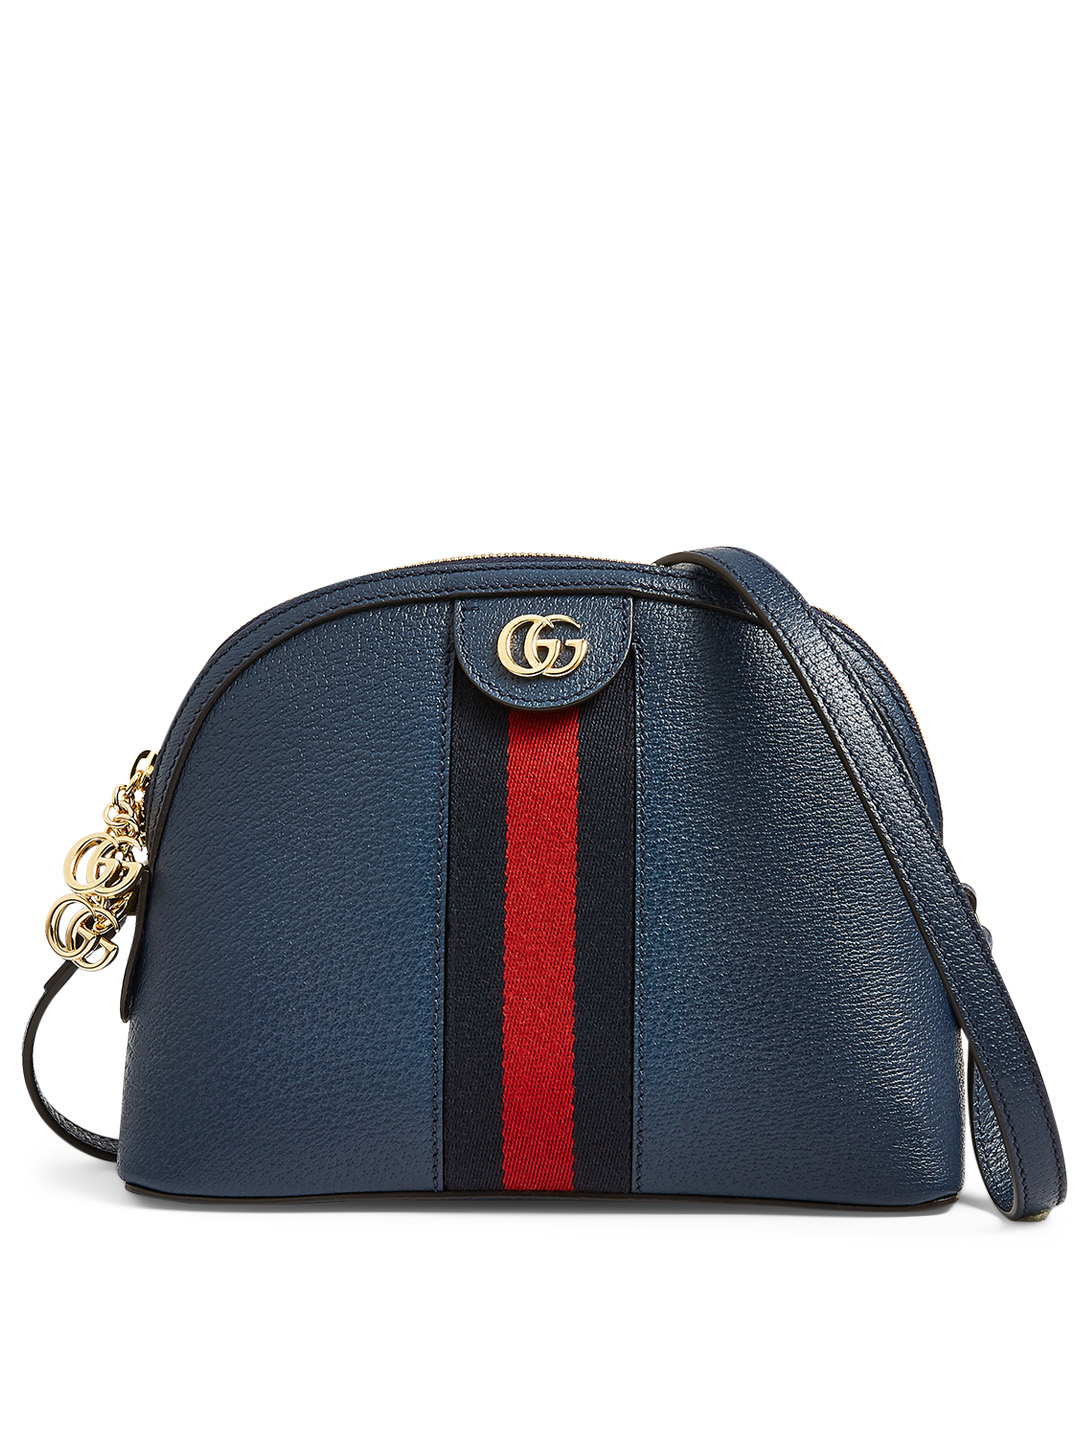 GUCCI Small Ophidia Leather Shoulder Bag Women's Blue